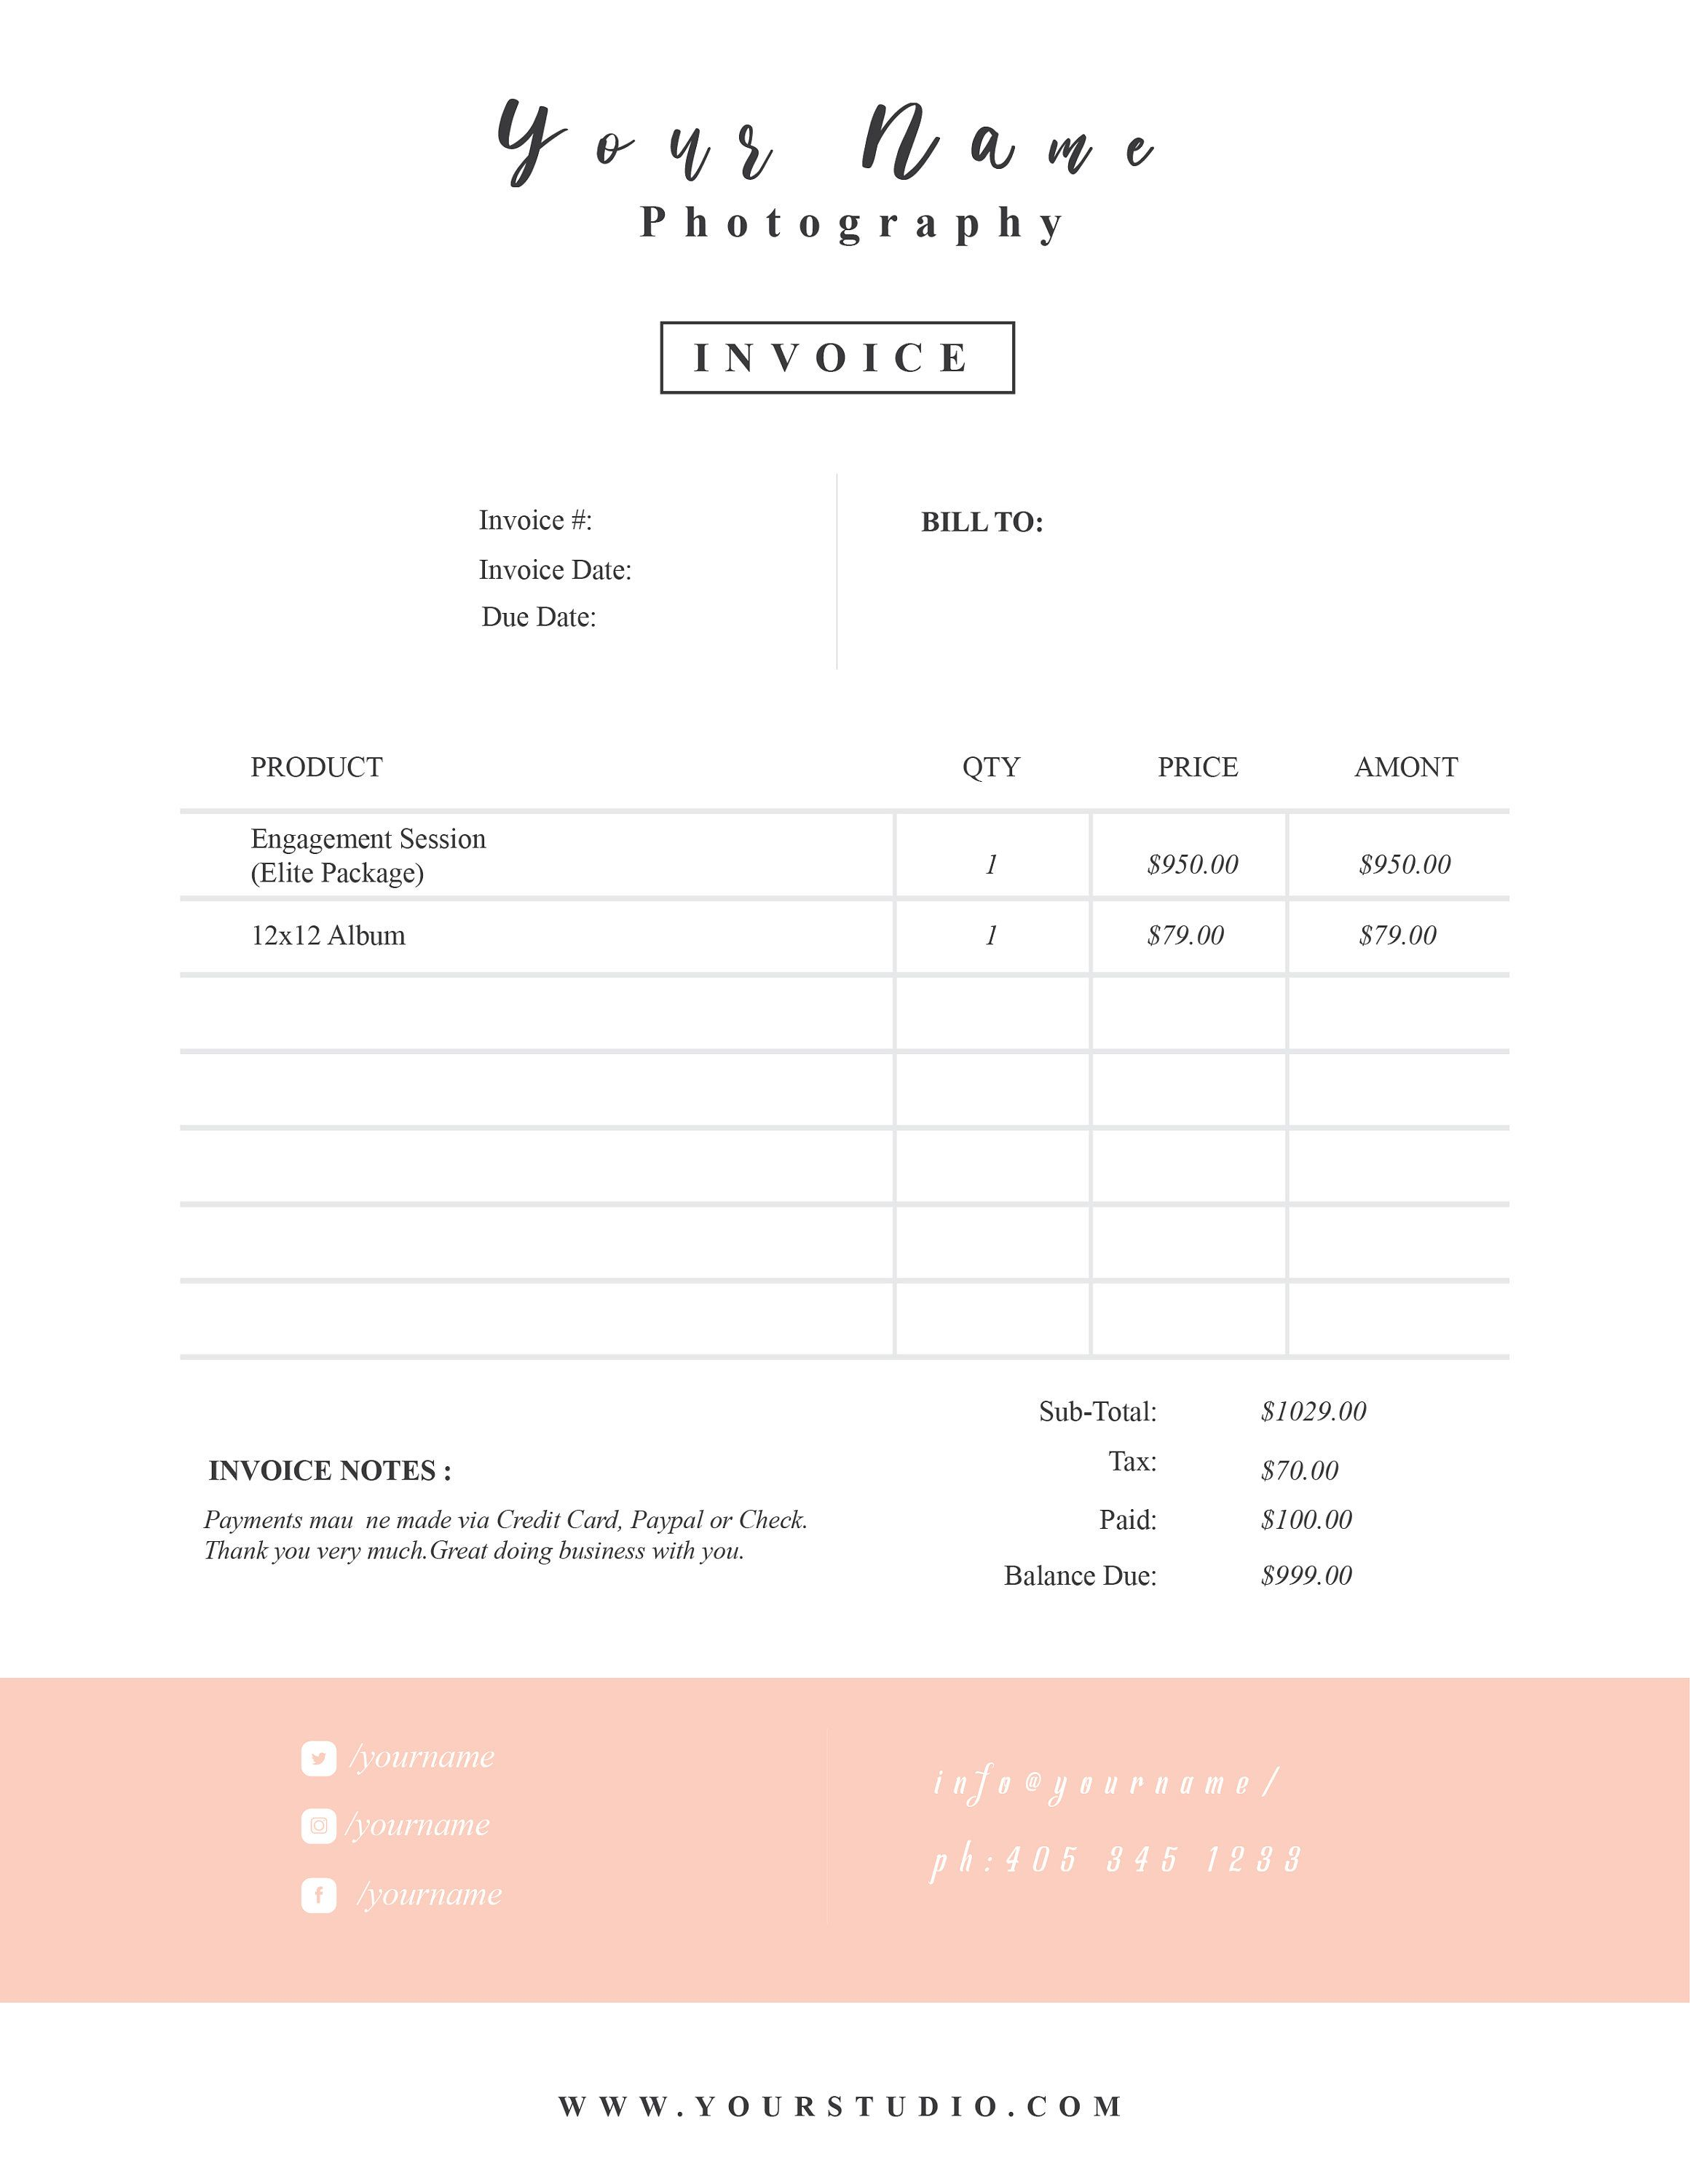 Wedding Photography Invoice Template Price Guide List For Photographers Photography Ph Photography Invoice Invoice Design Template Photography Invoice Template